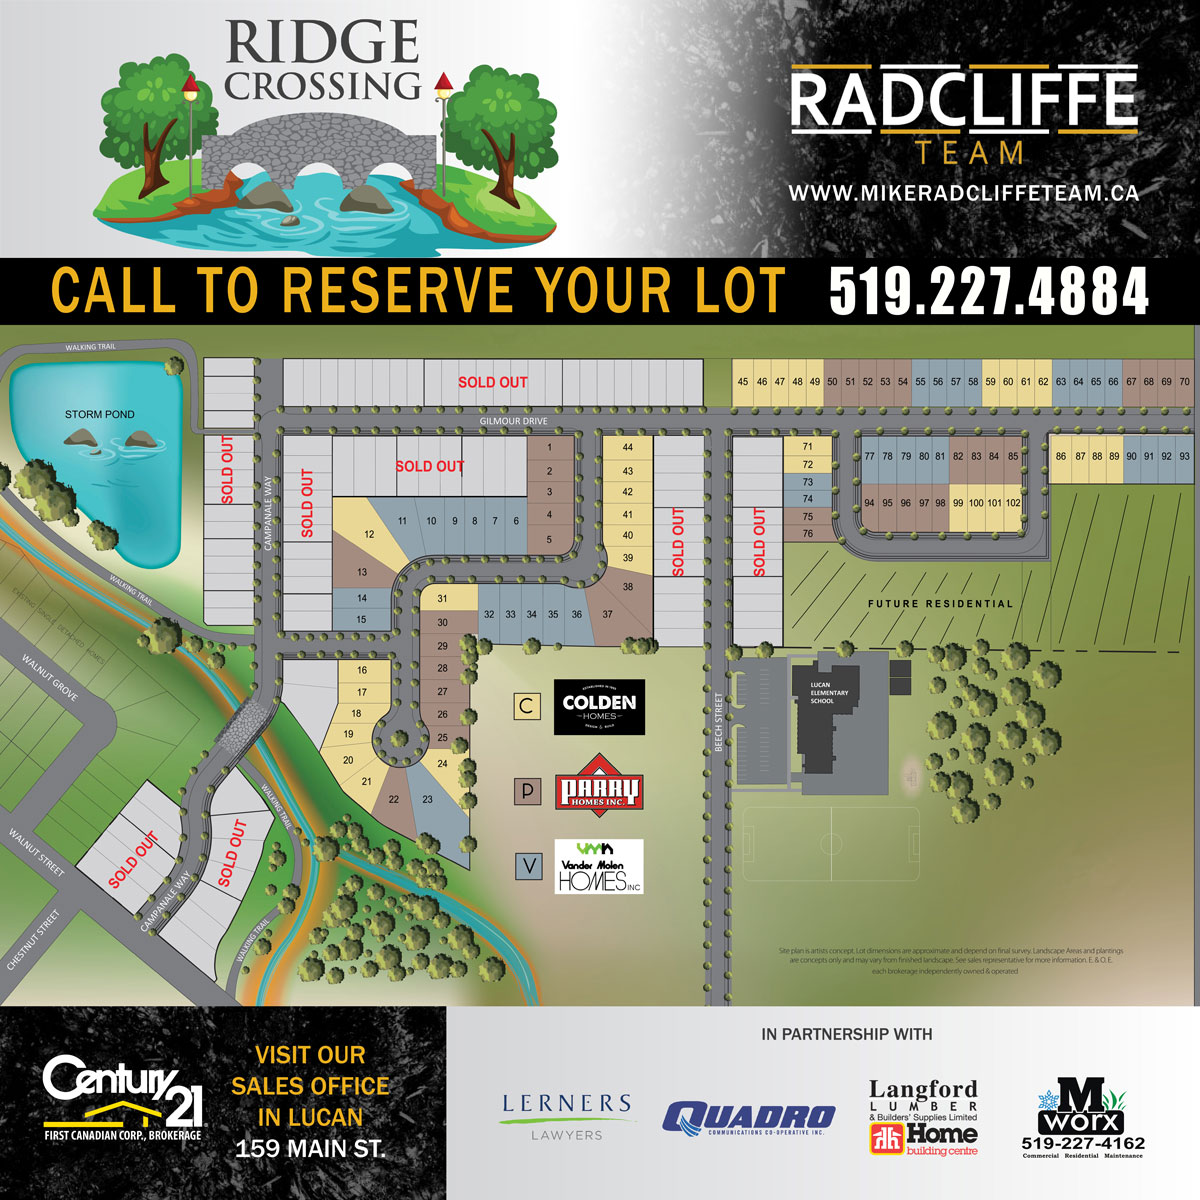 Ridge Crossing map showing available and sold lots.